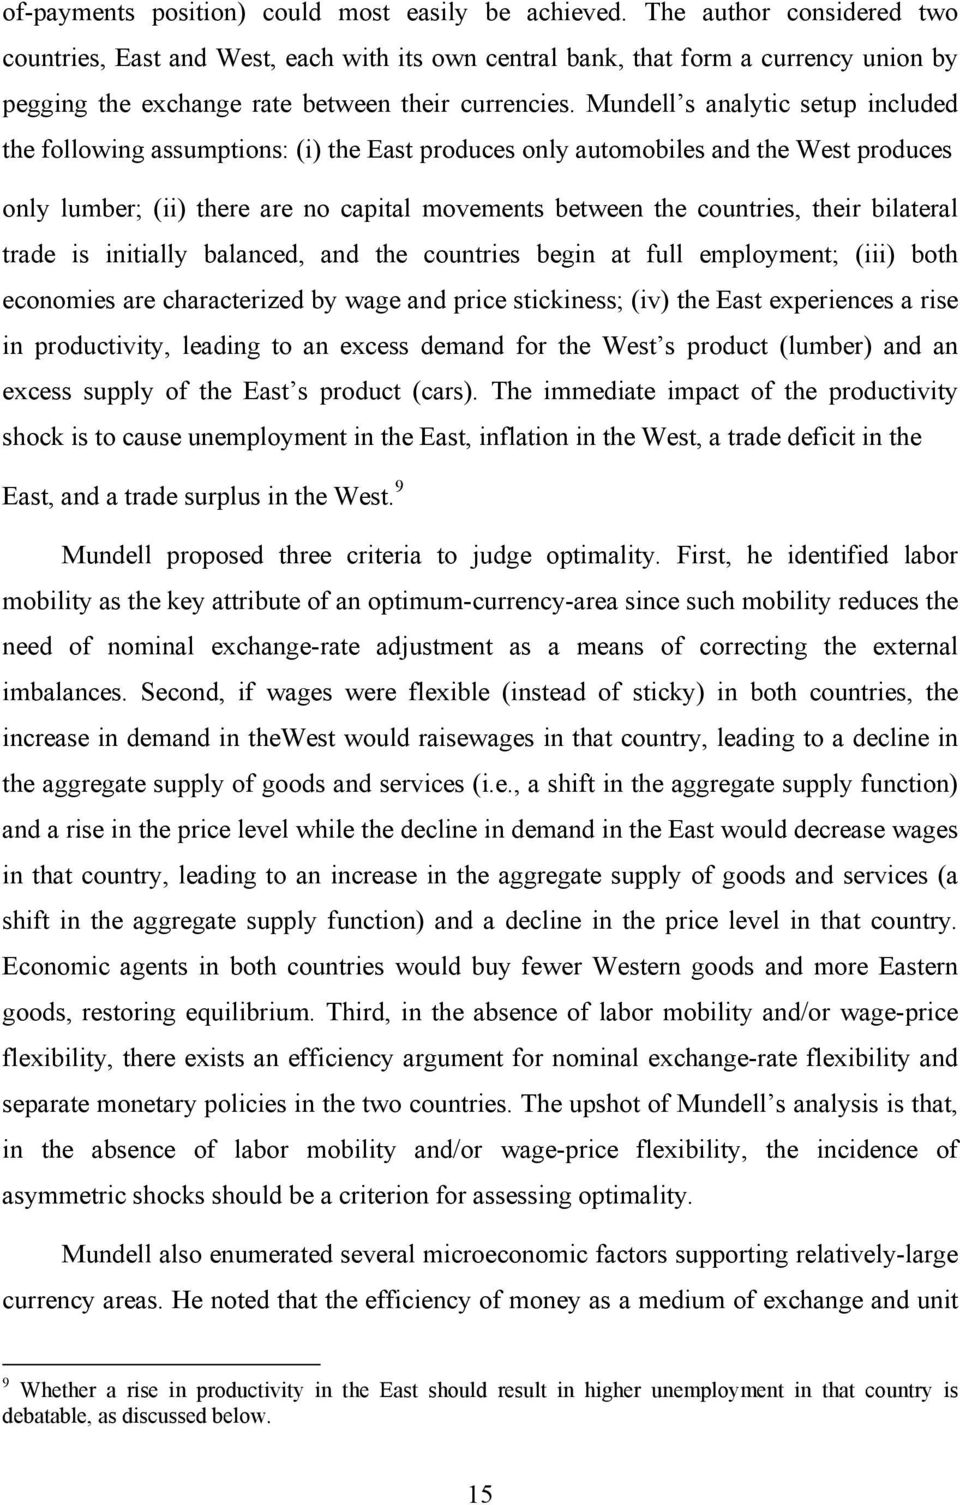 Mundell s analytic setup included the following assumptions: (i) the East produces only automobiles and the West produces only lumber; (ii) there are no capital movements between the countries, their